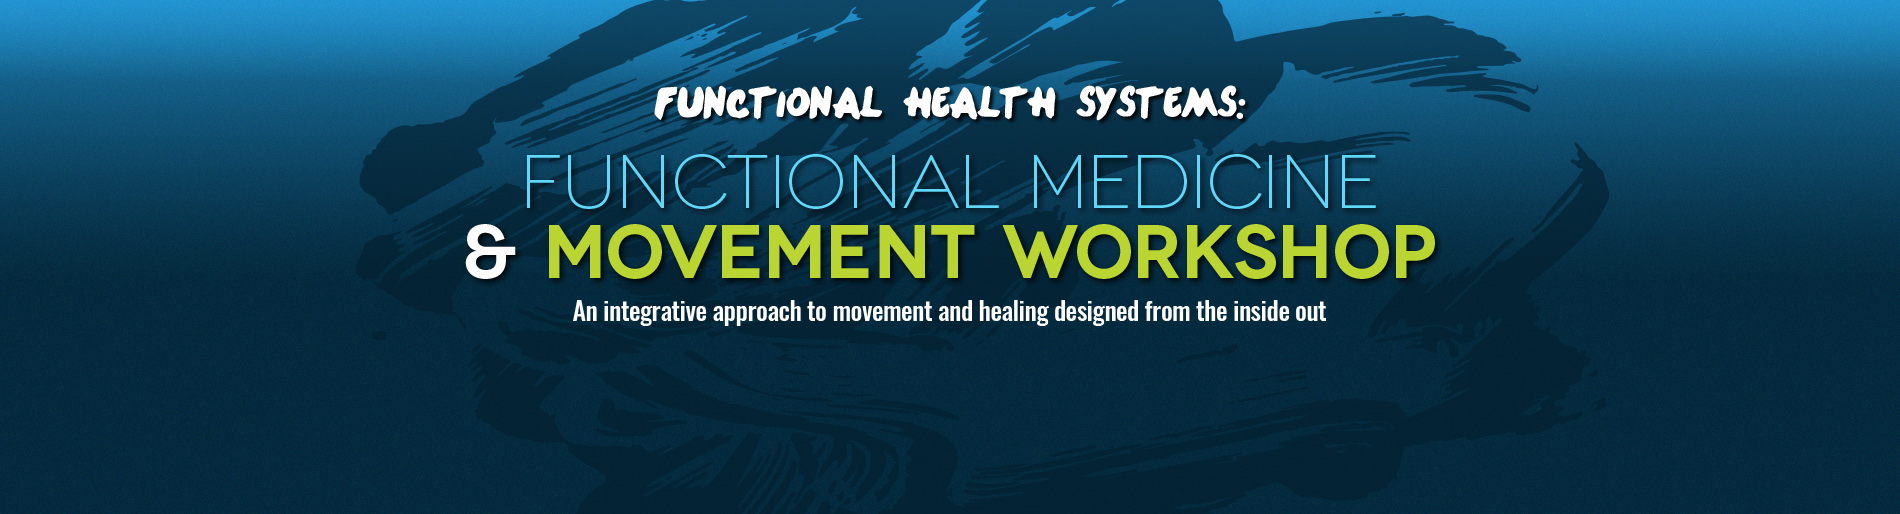 Primal Movement chains workshop by Perry Nickleston mobile banner